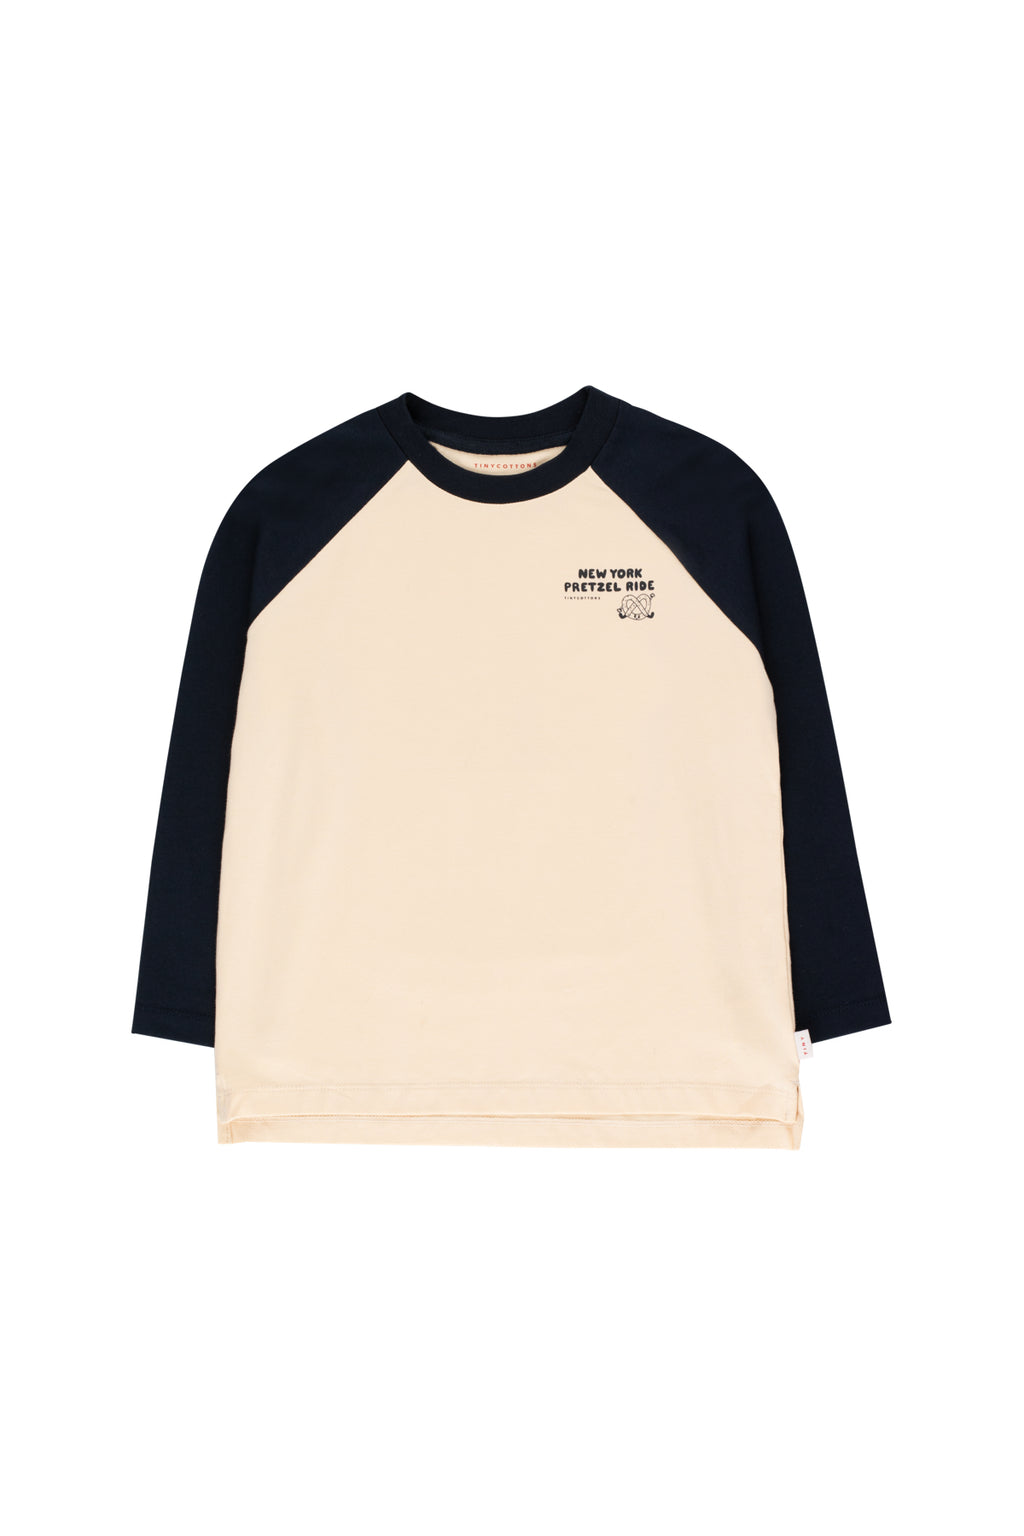 Tiny Cottons Pretzel Ride Color Block Tee  - Cream/Navy